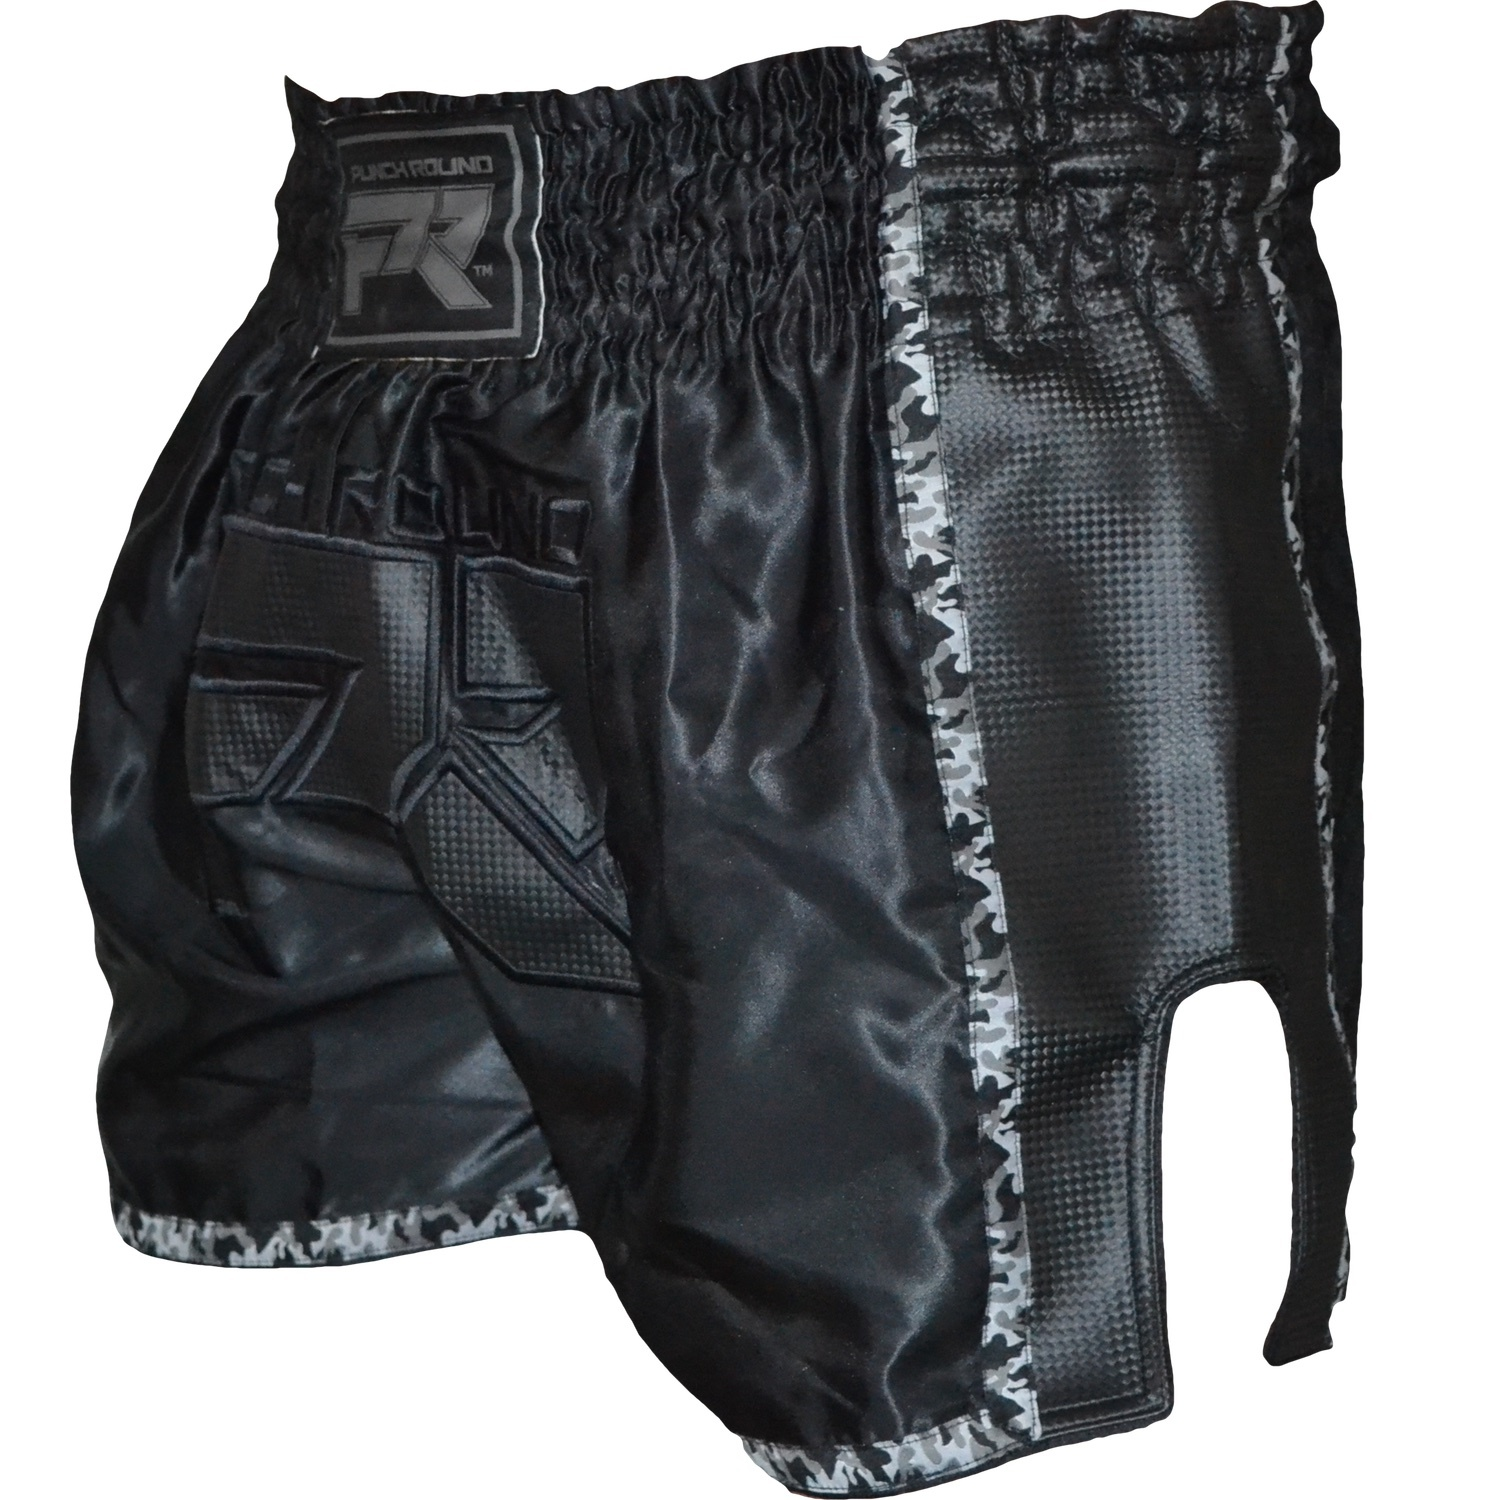 Punch Round Kickboxing Shorts Dull Carbon Camo